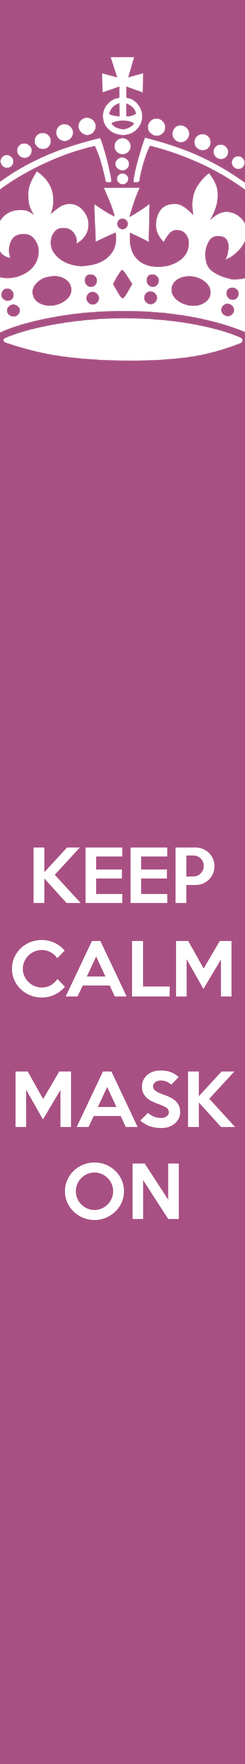 Poster: KEEP CALM  MASK ON